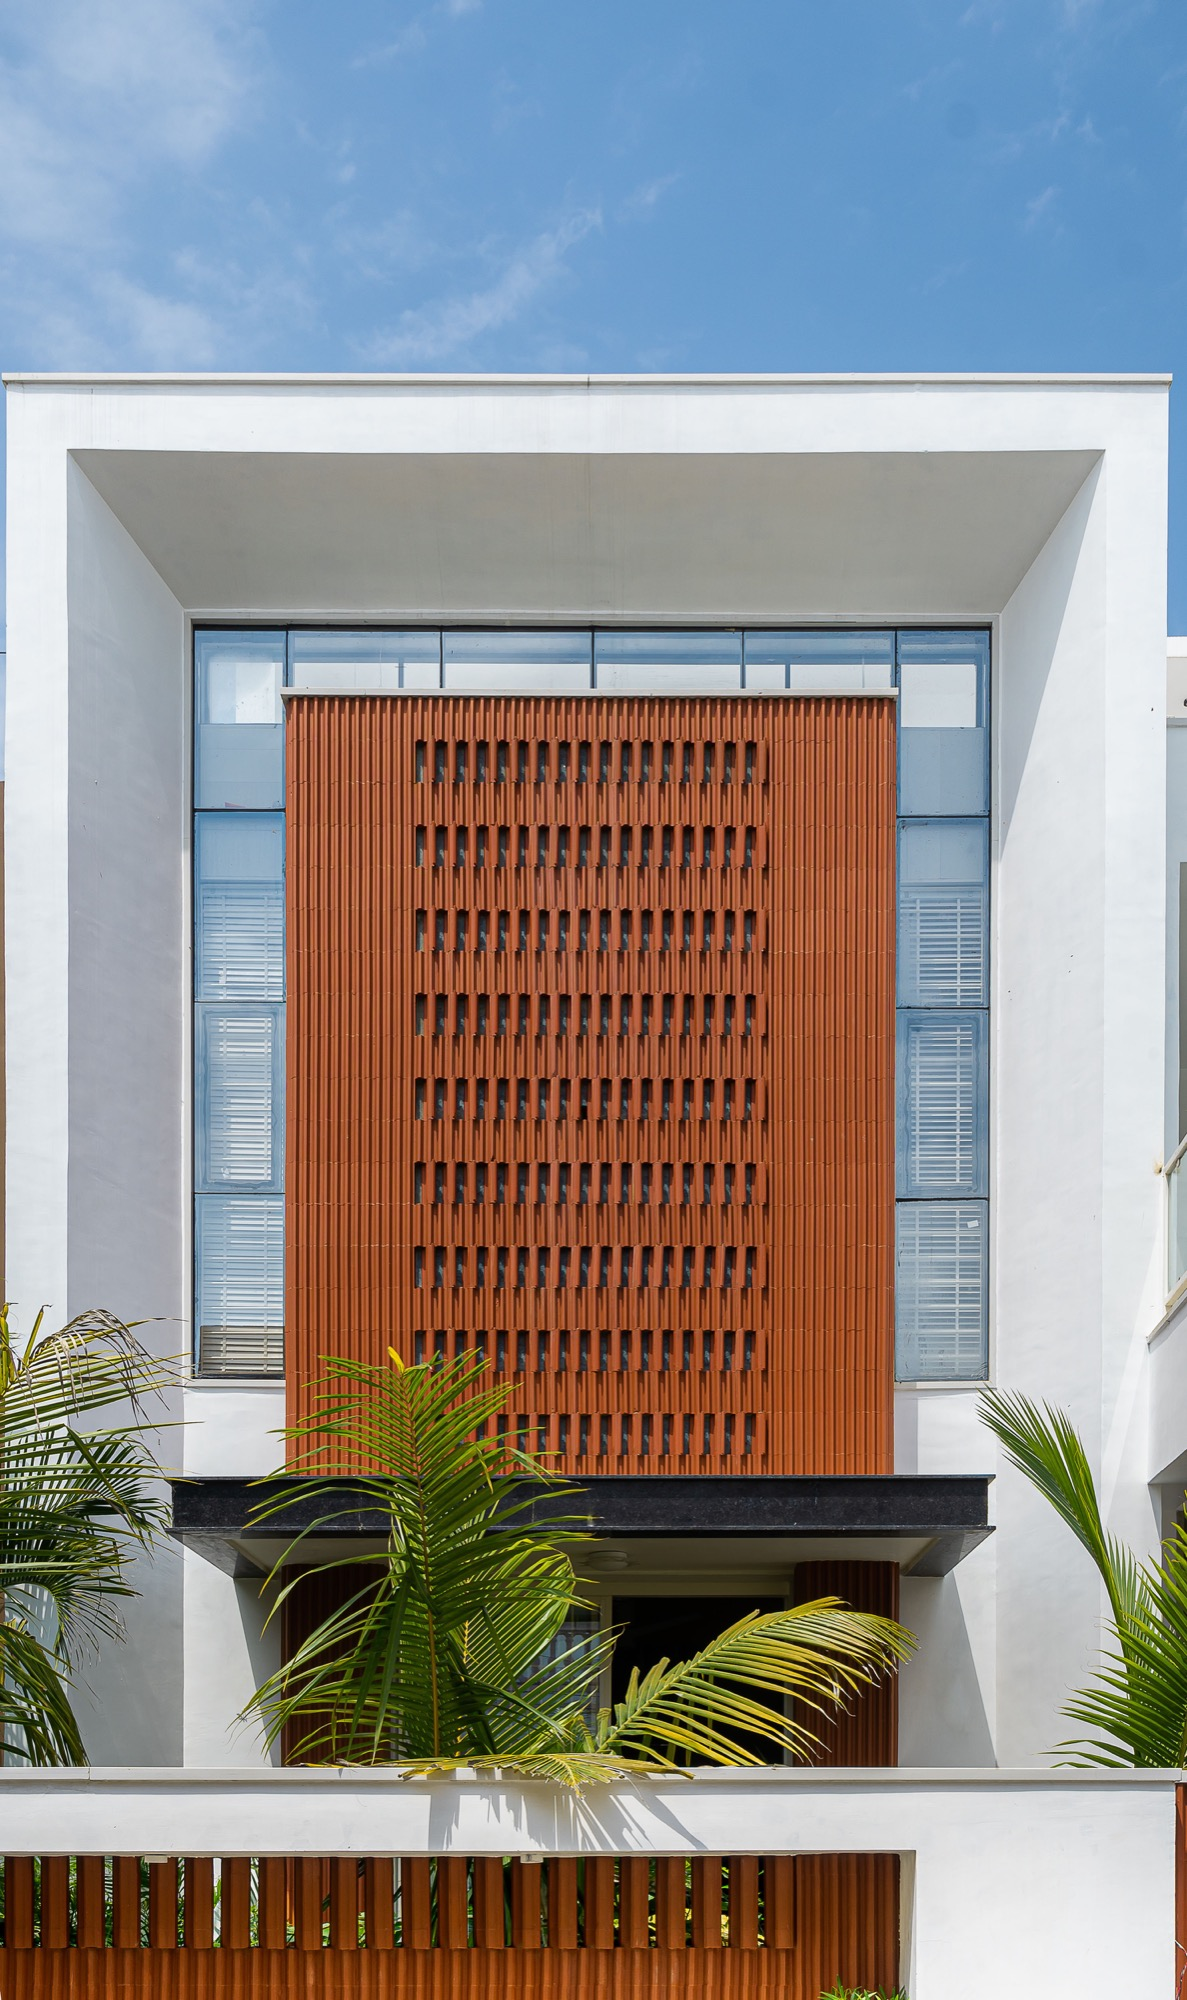 Manoj Patel Design Studio reuses the clay roof tiles in Vadodara residence to minimize the glare from direct sun light. 5